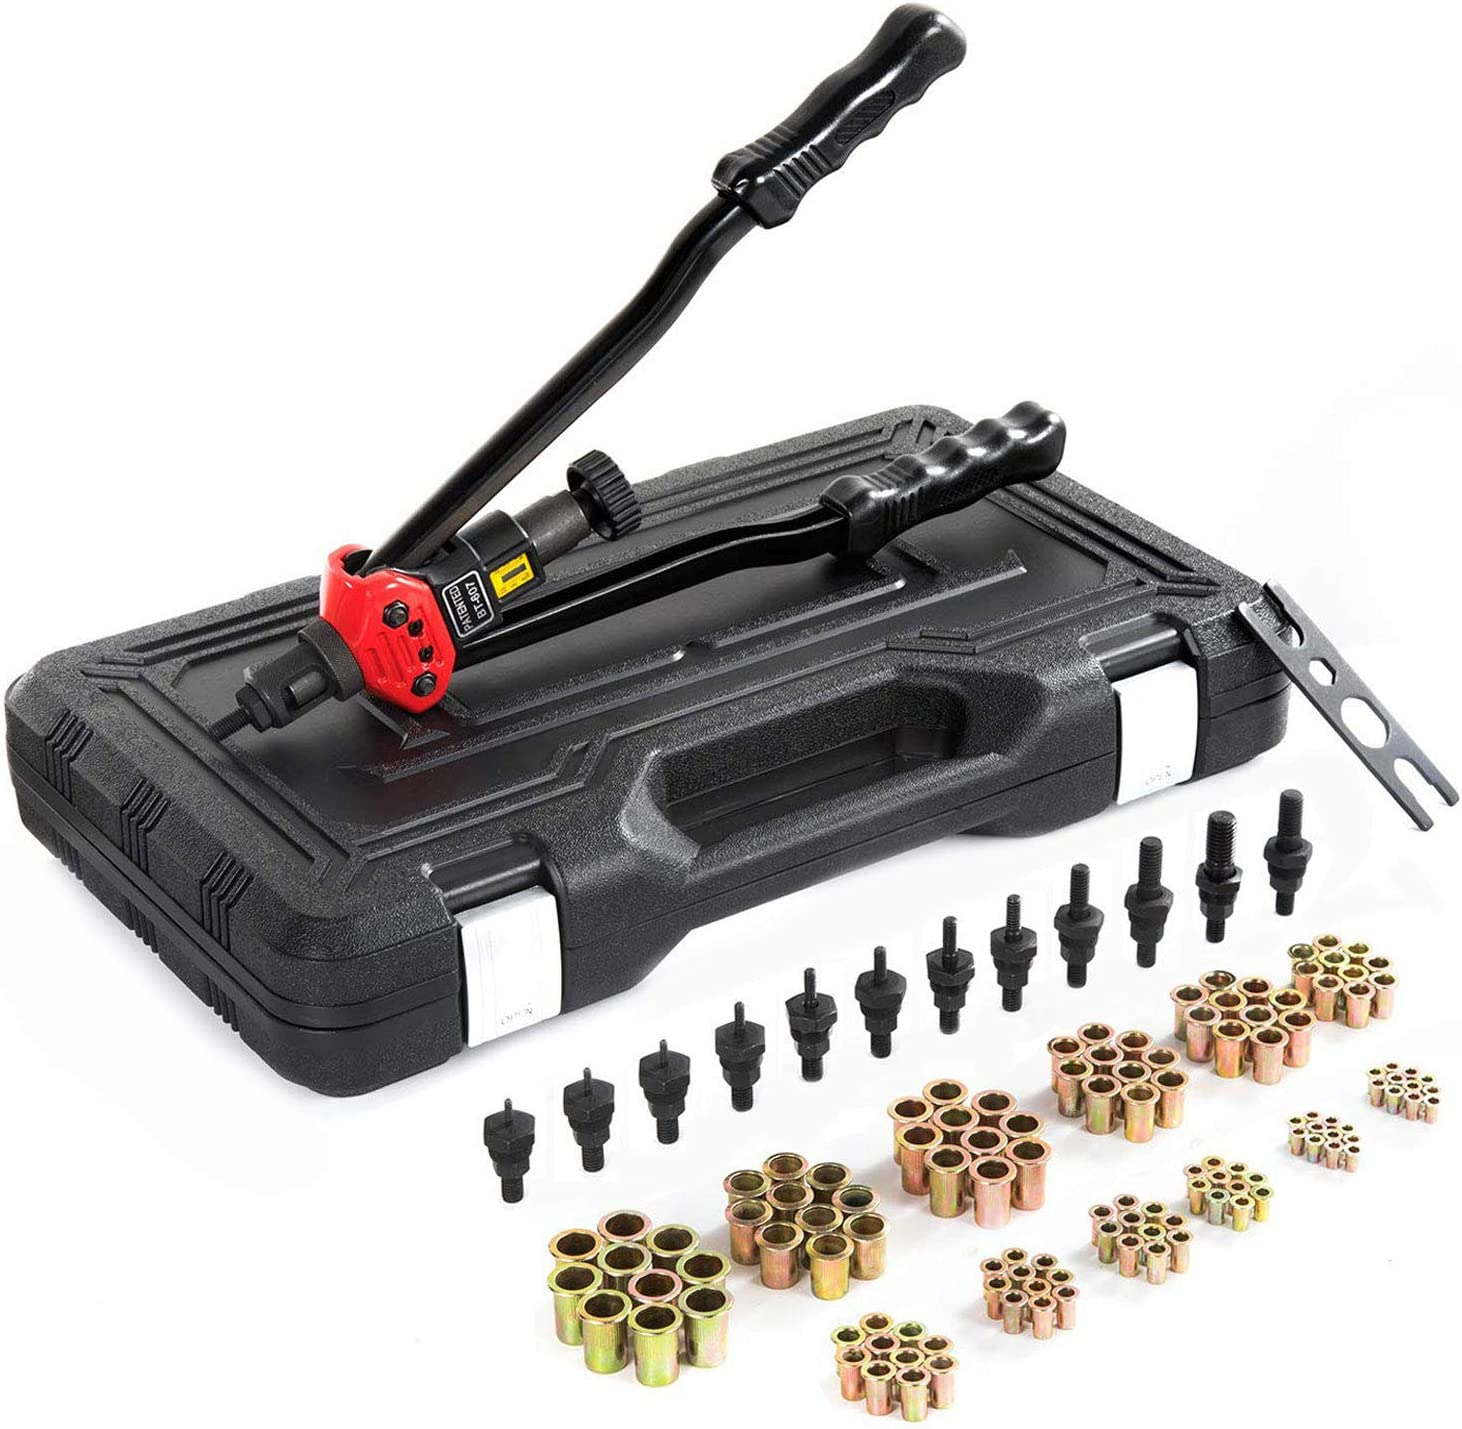 8-32)And 120 PCS Rivets Nuts 3//8-16 5//16-18 zision tool 16/″Hand Riveter Rivet Tool professional installation kit Including 12 Interchangeable Mandrel(M3 M4 M5 M6 M8 M10 M12 SAE 10-24 1//4-20